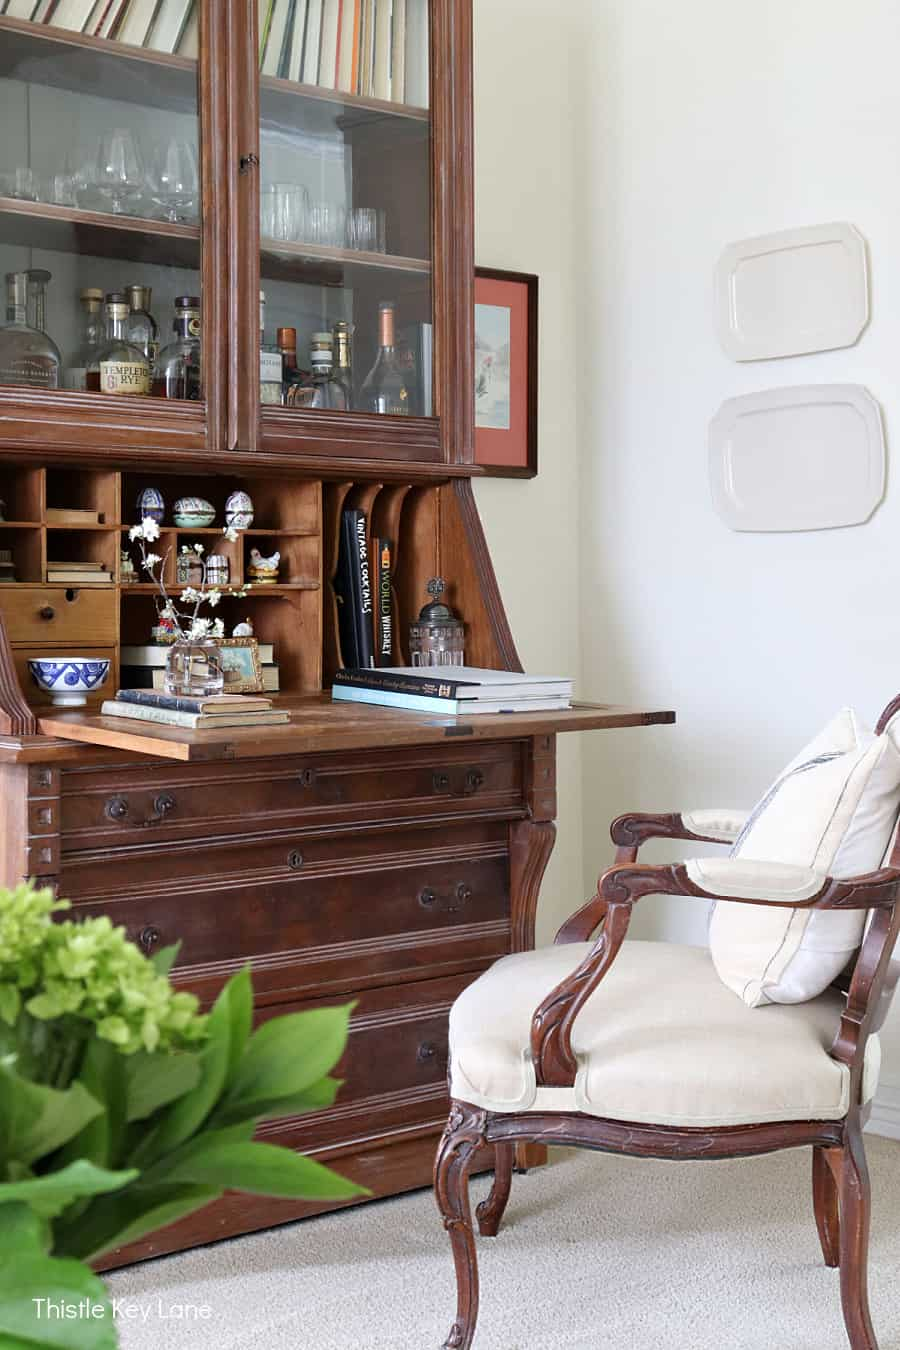 Secretary desk with a French chair. Organizing Napkins And Linens.